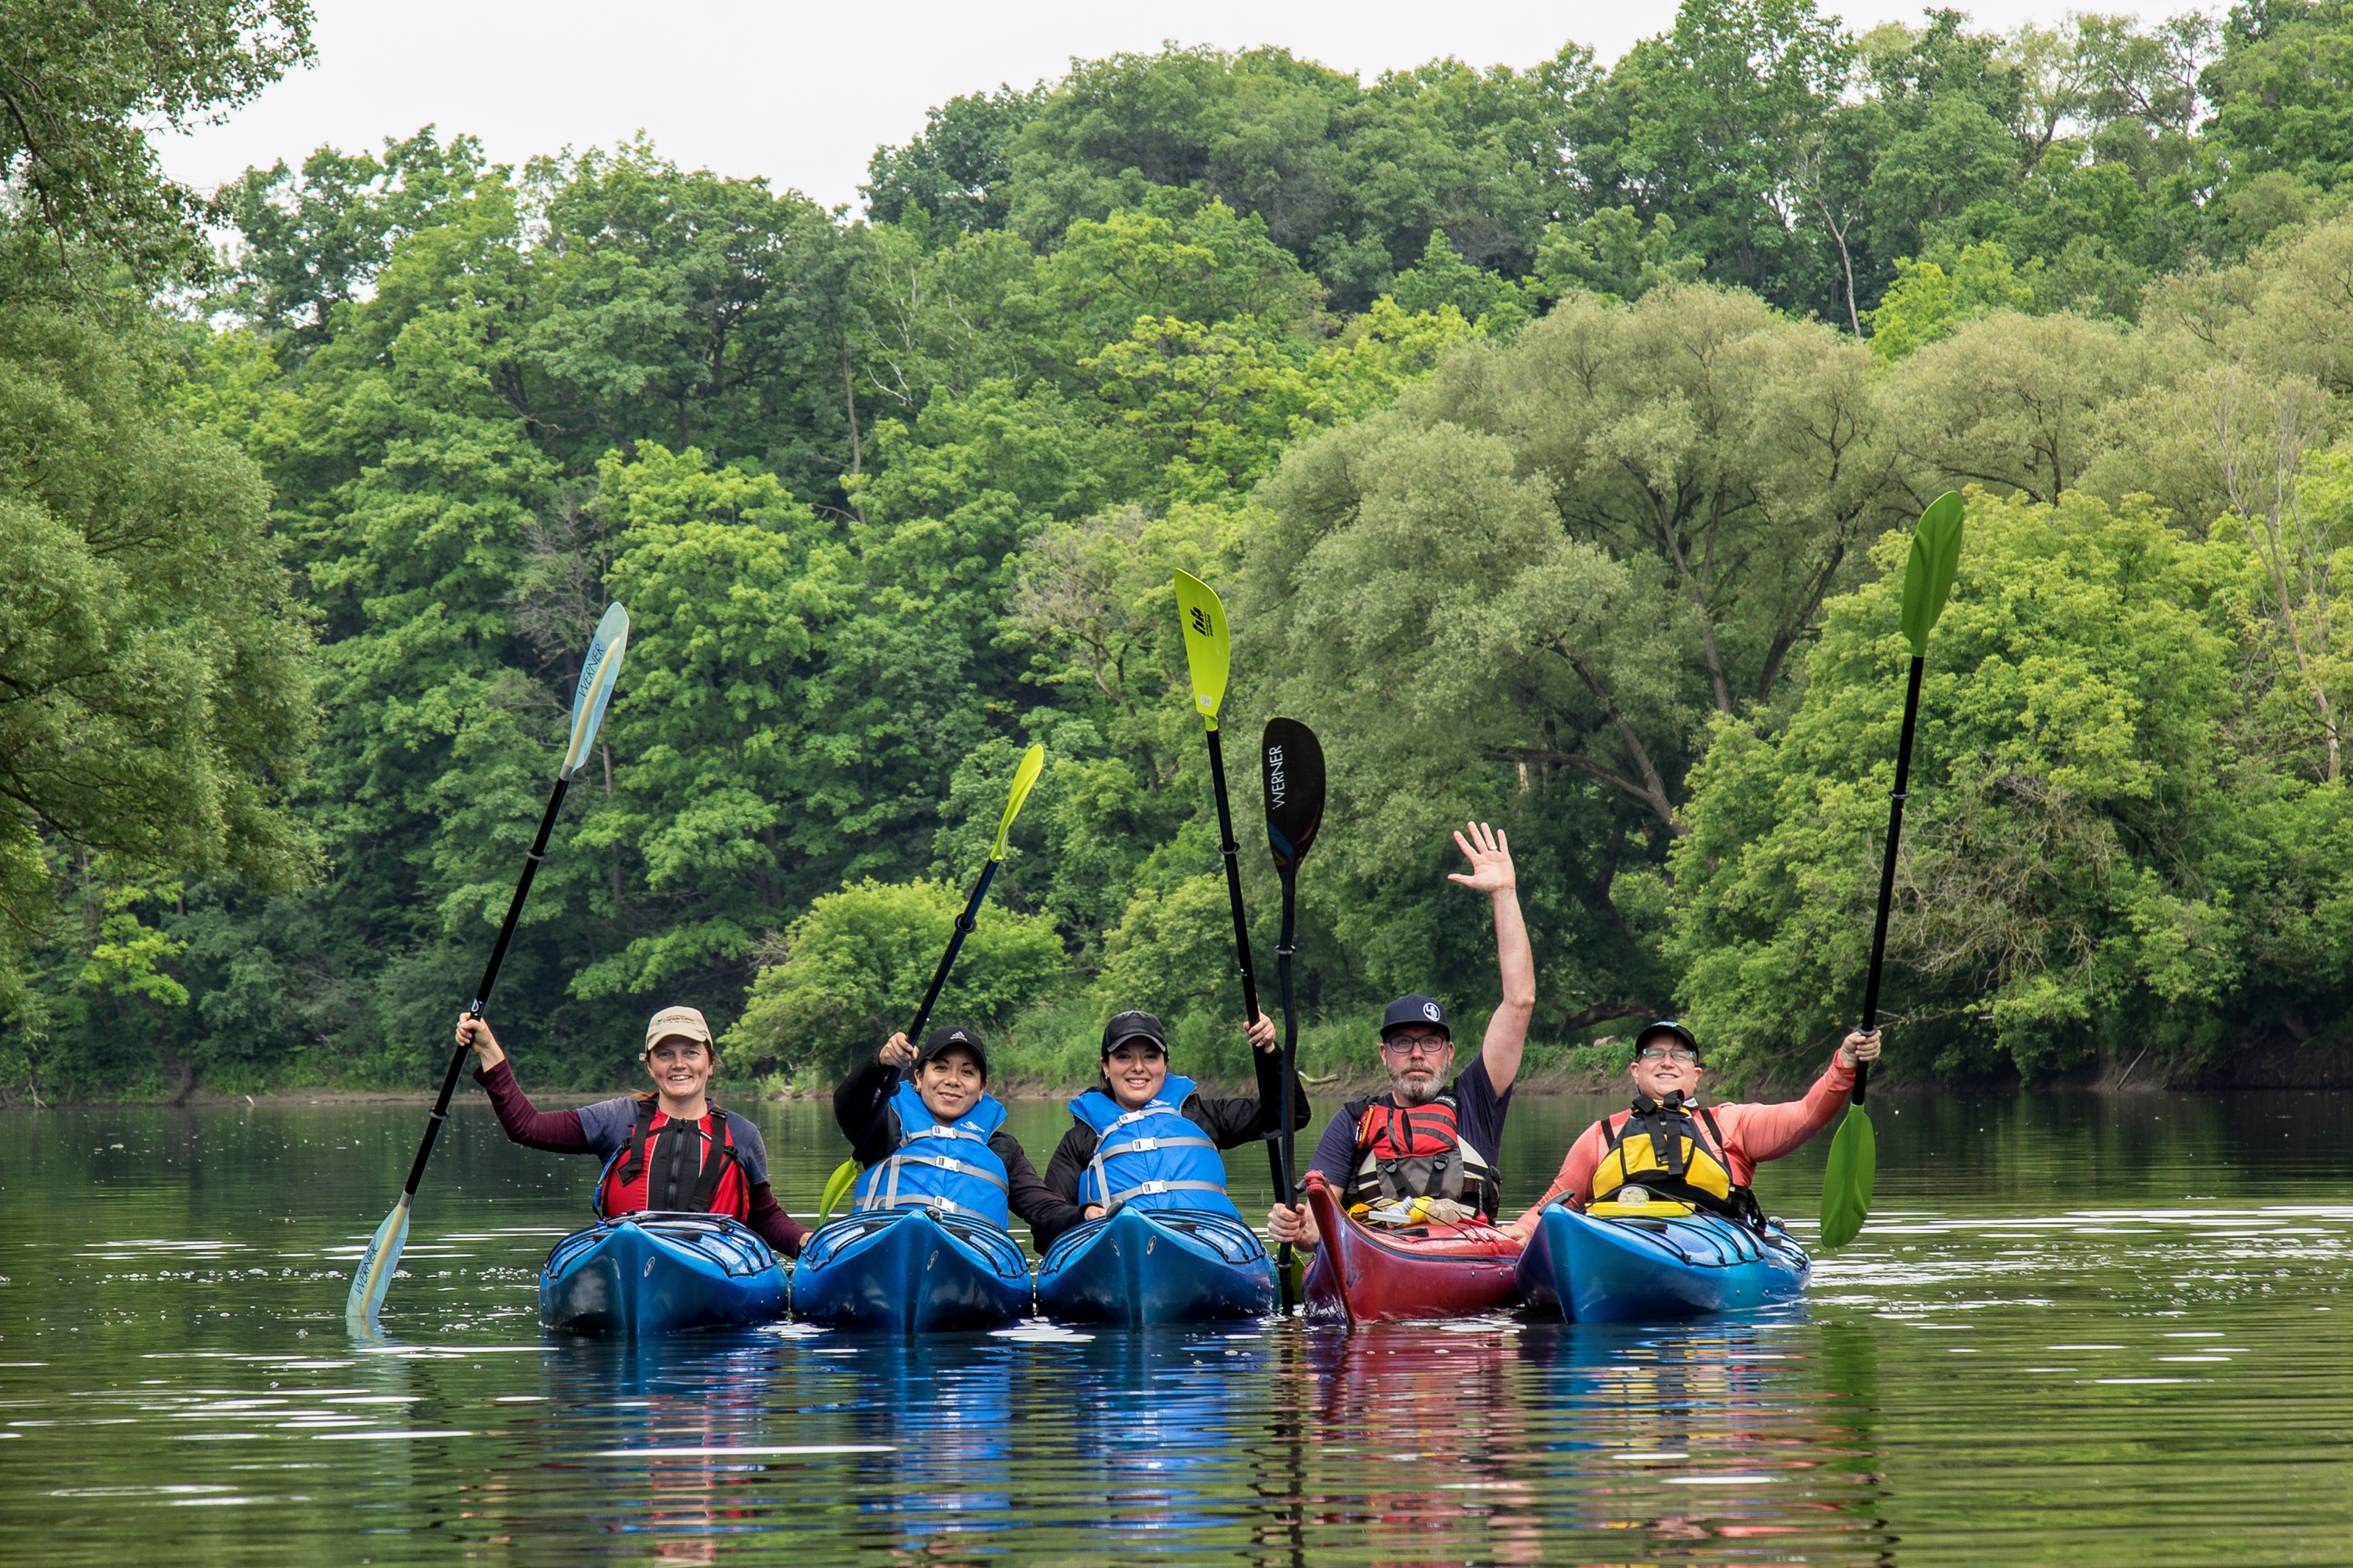 Kayaks and canoes on the Humber River